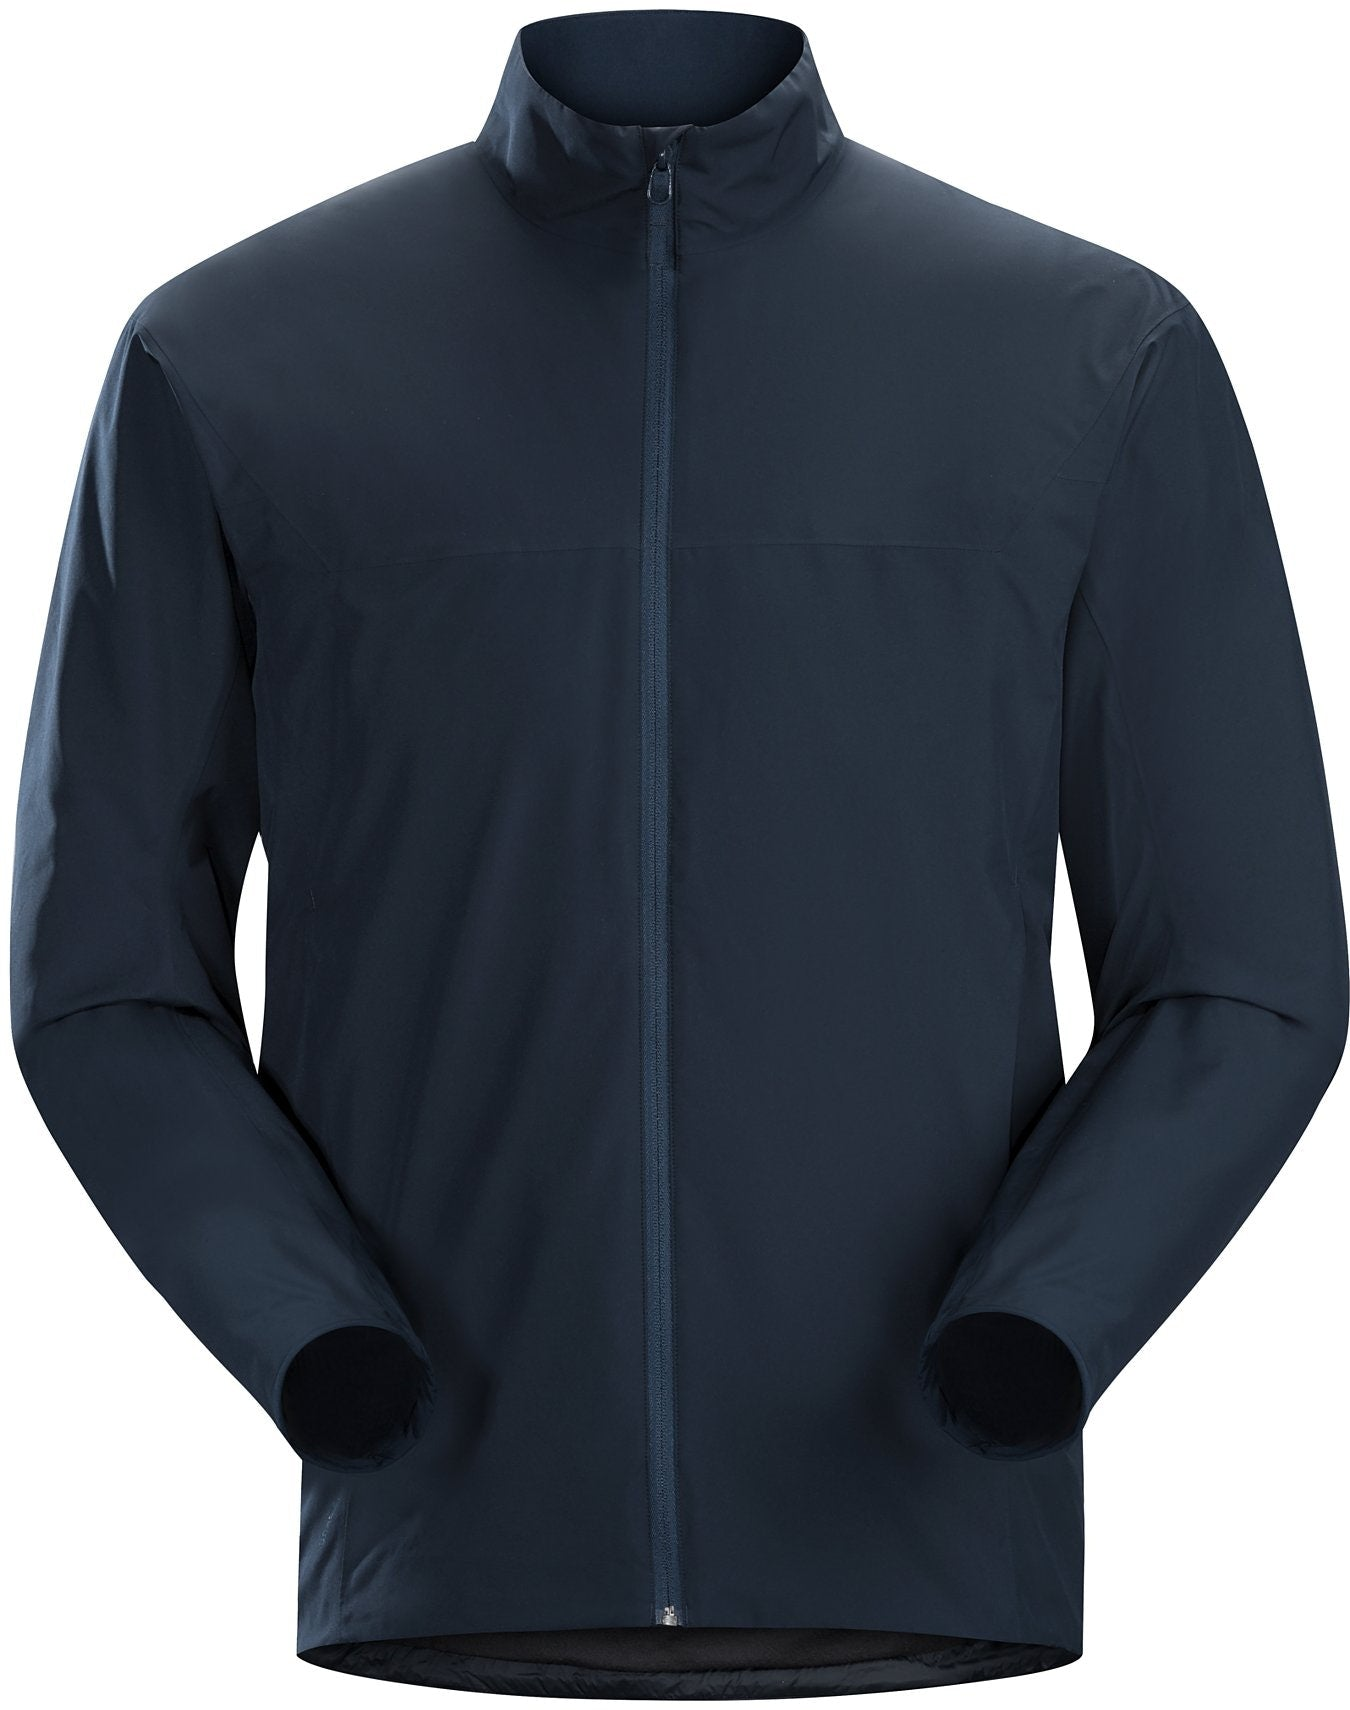 Arc'teryx Men's Solano Jacket in Tui